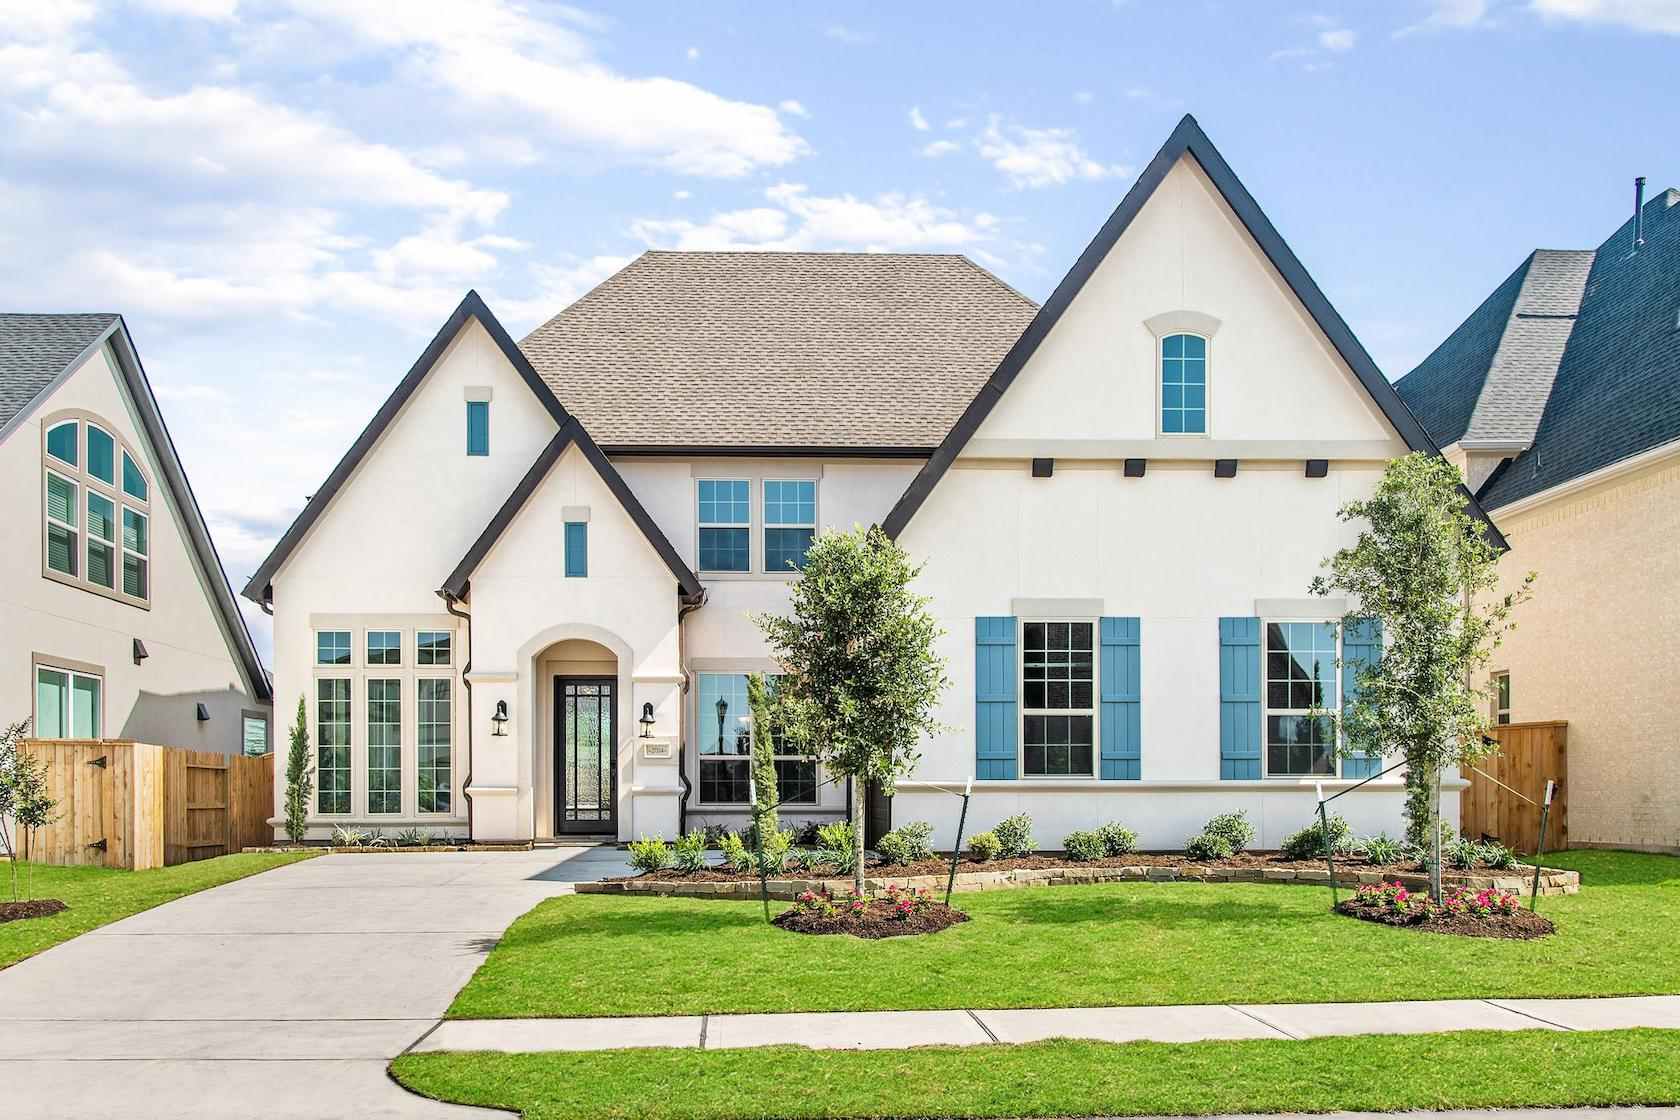 White front exterior with teal window shutters